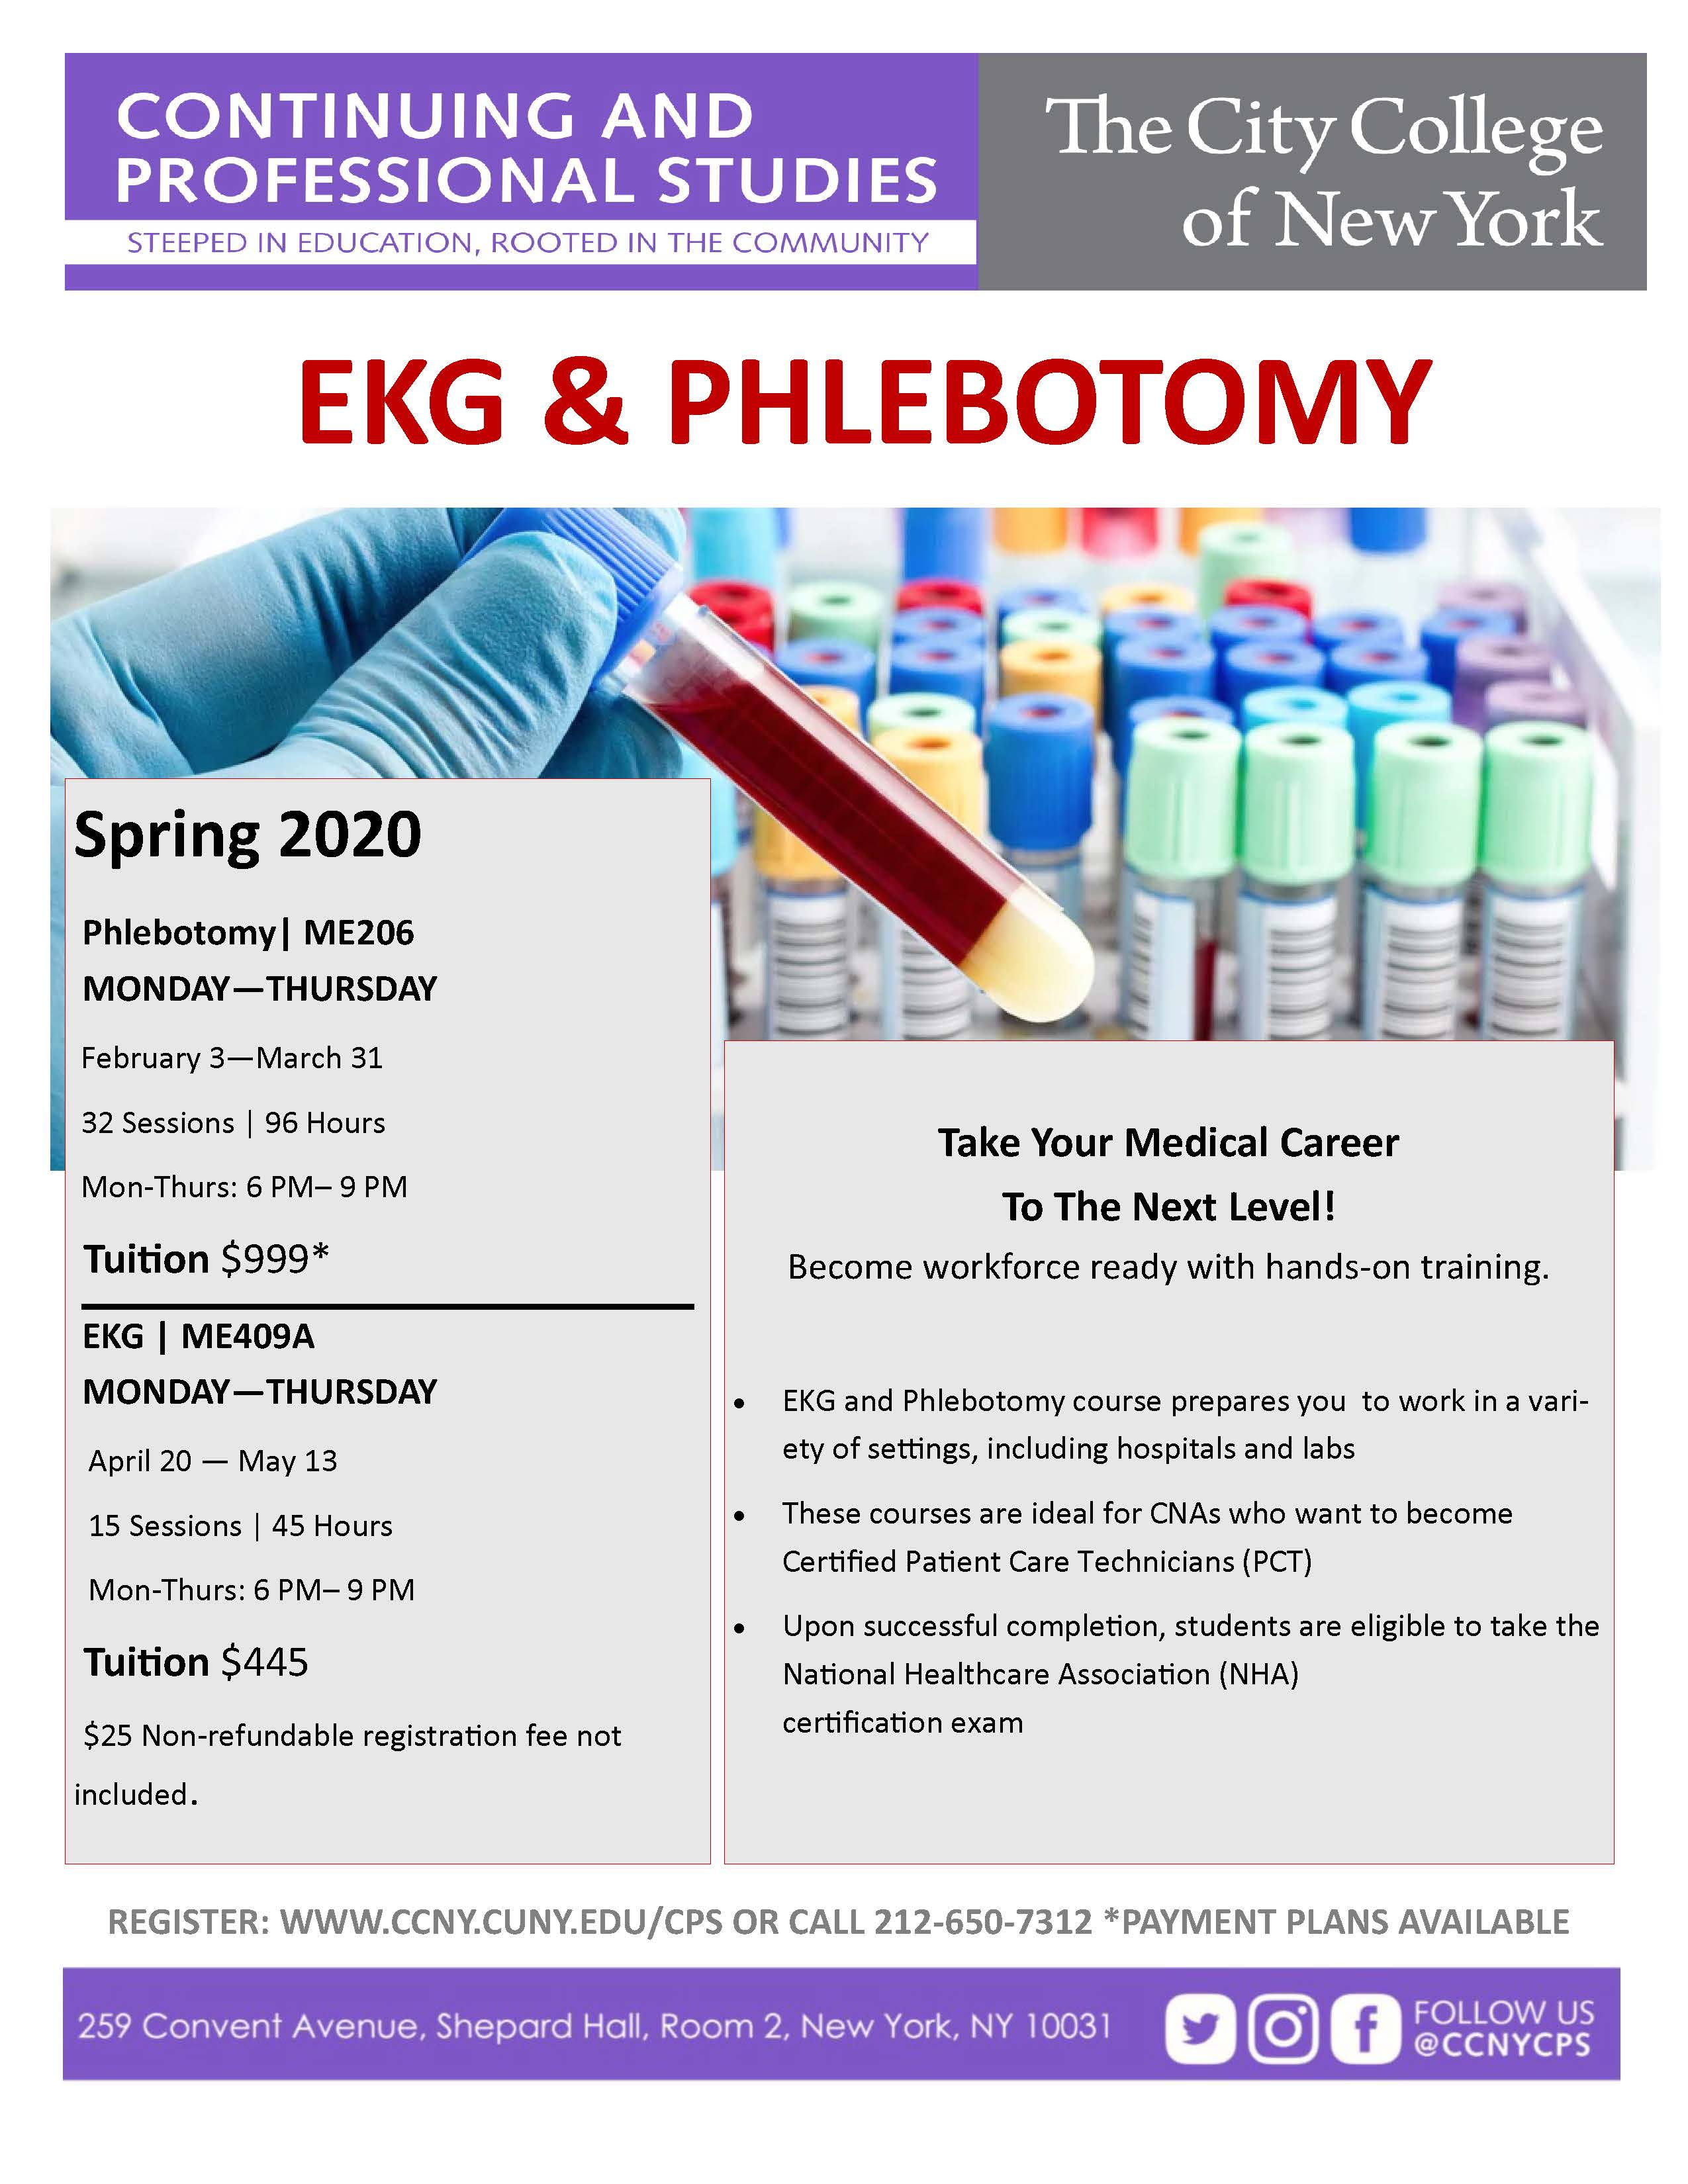 Ekg Phlebotomy Certification The City College Of New York